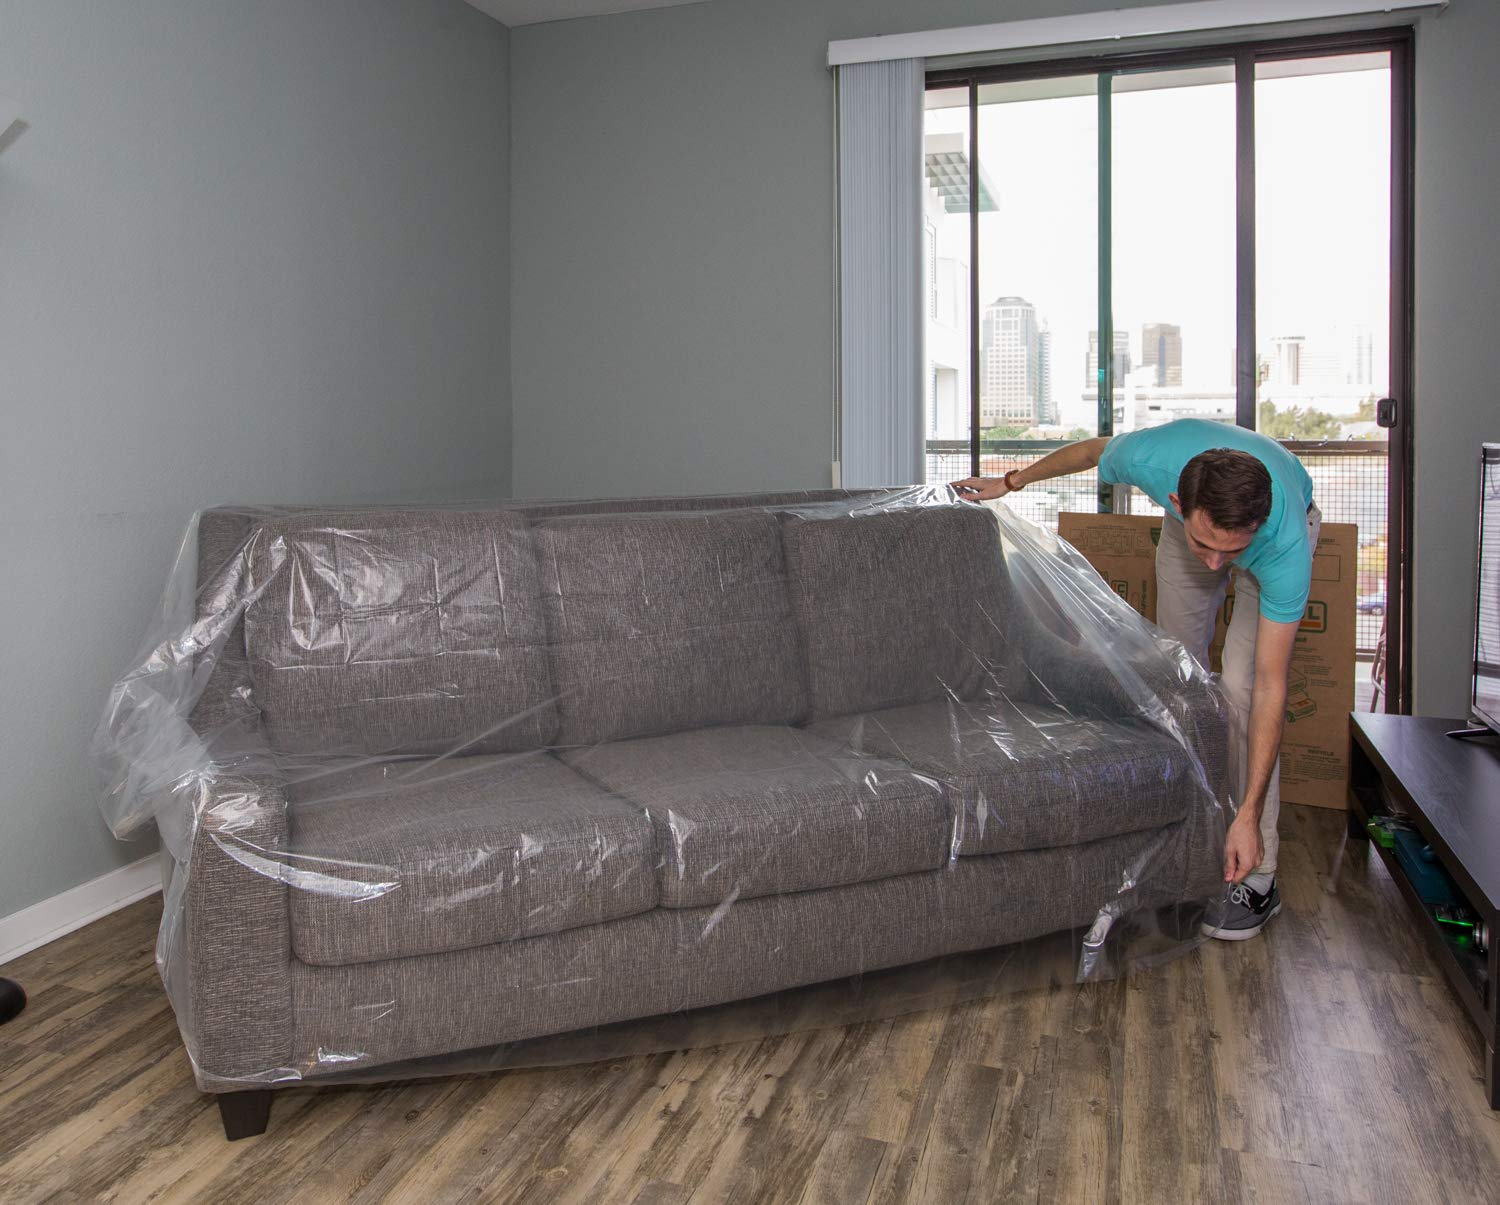 U-Haul Moving & Storage Sofa Cover (Fits Sofas up to 8 Long) - 134